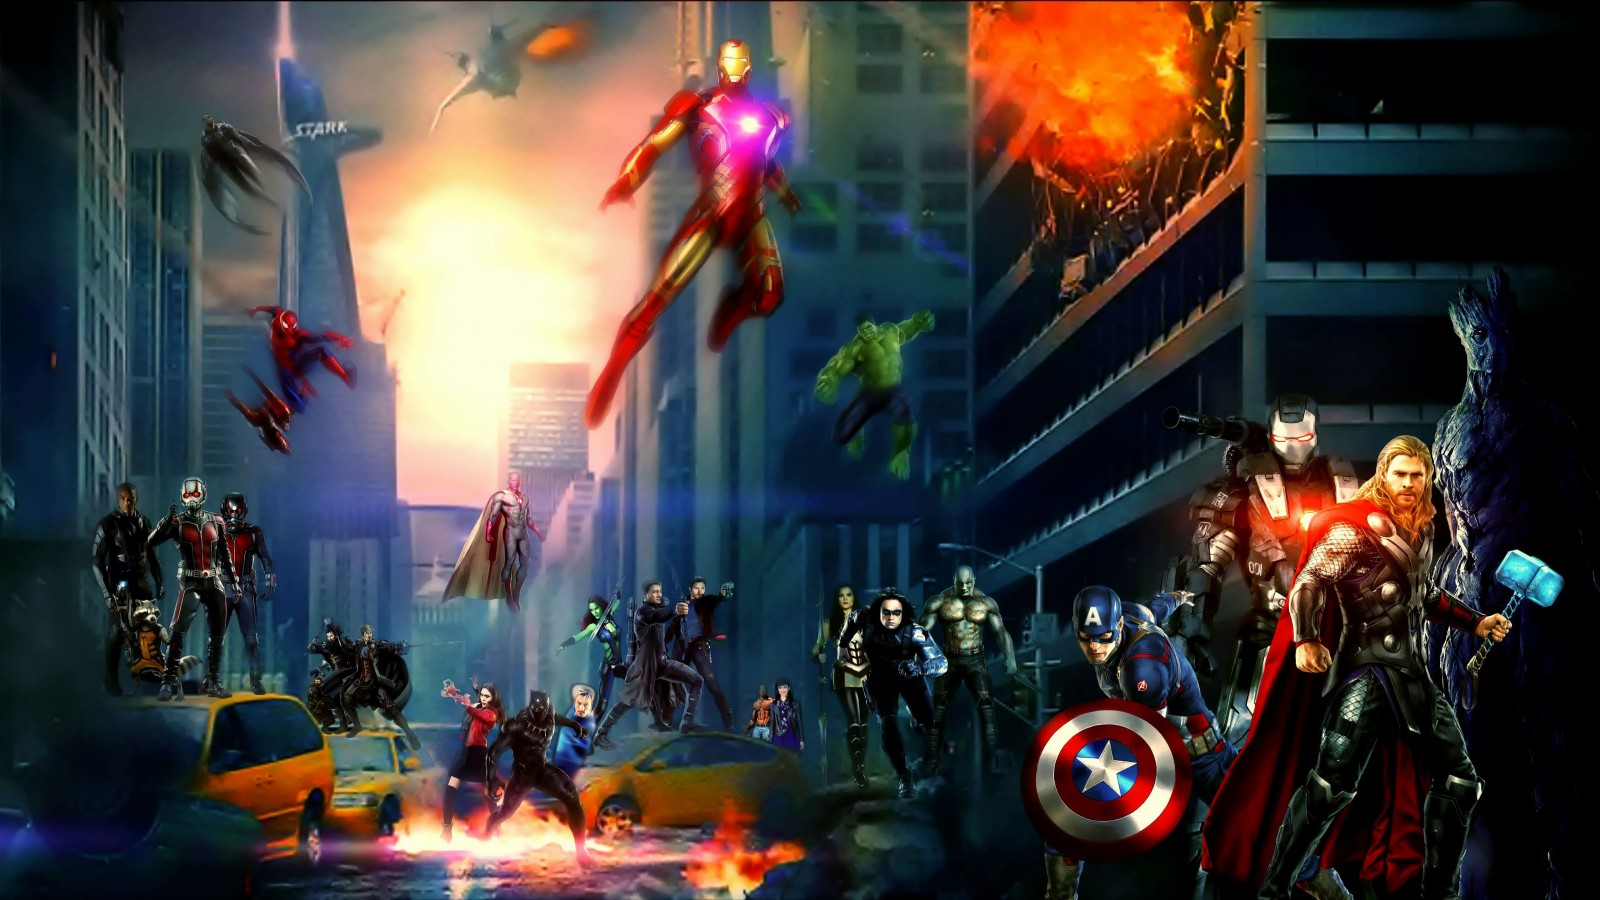 Wallpaper Superhero Marvel 3d Marvel Cinematic Universe 5k Wallpapers Hd Wallpapers